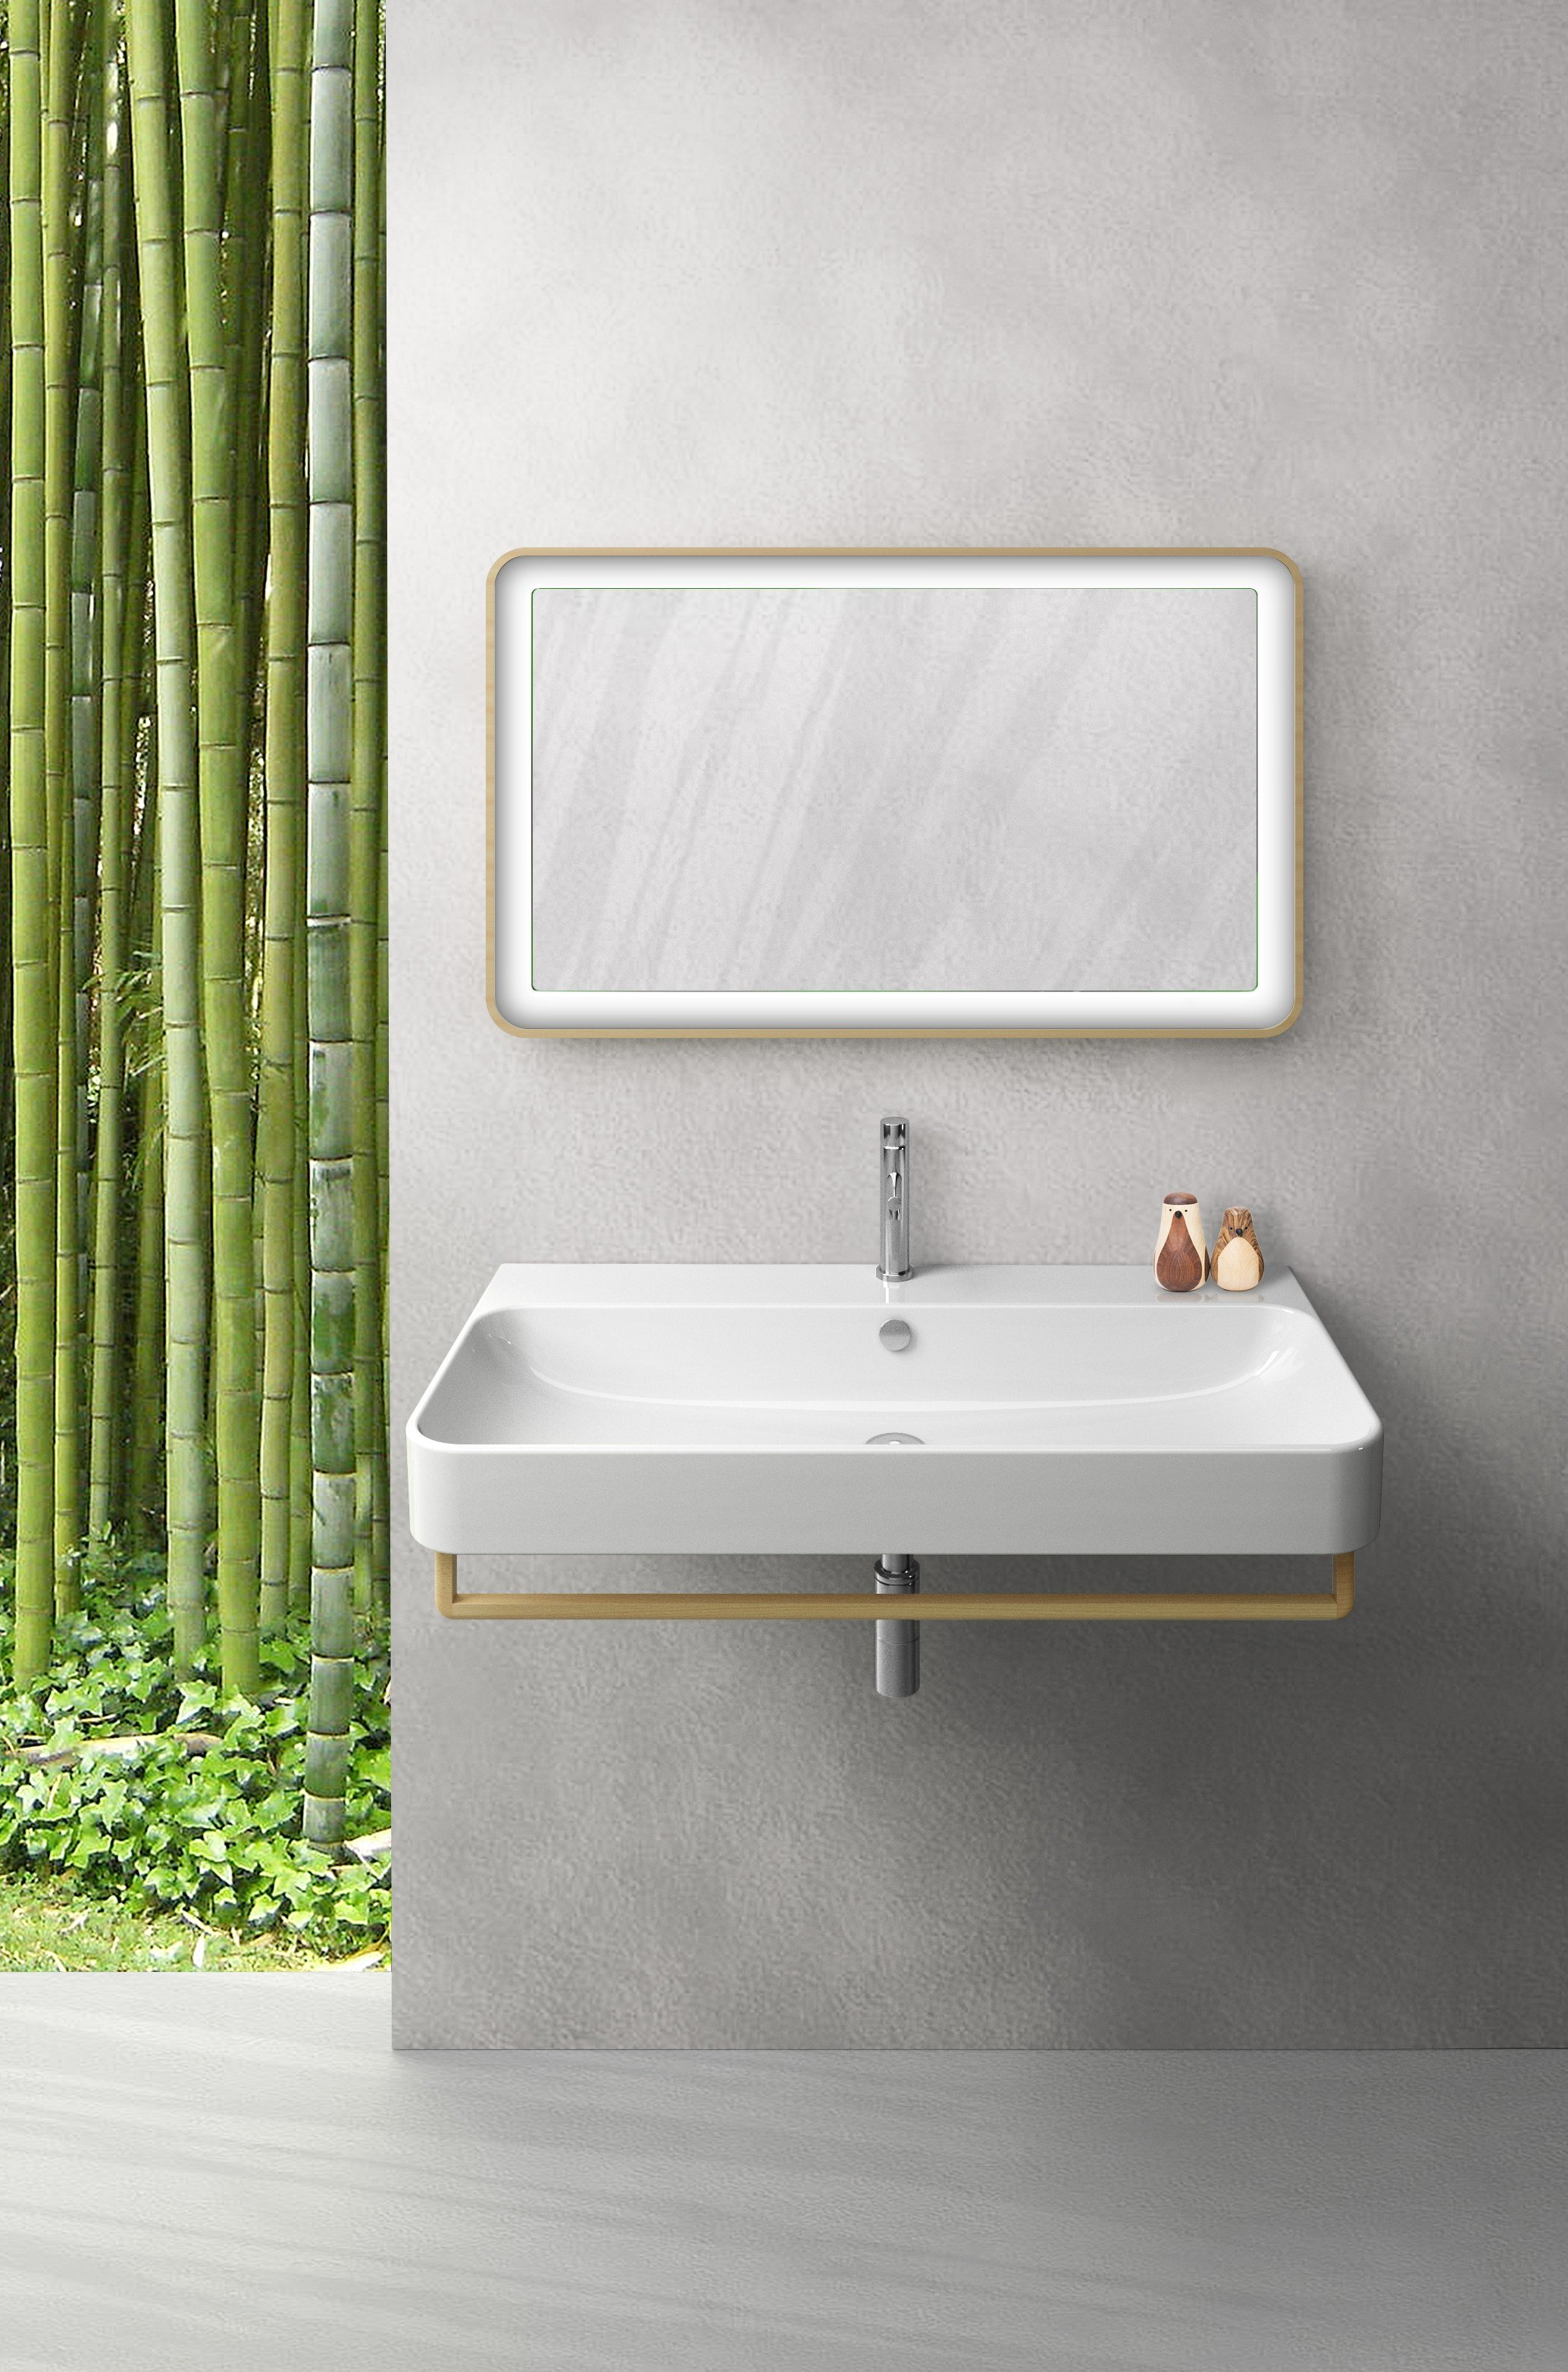 Green wall mounted washbasin by ceramica catalano for Ceramica catalano